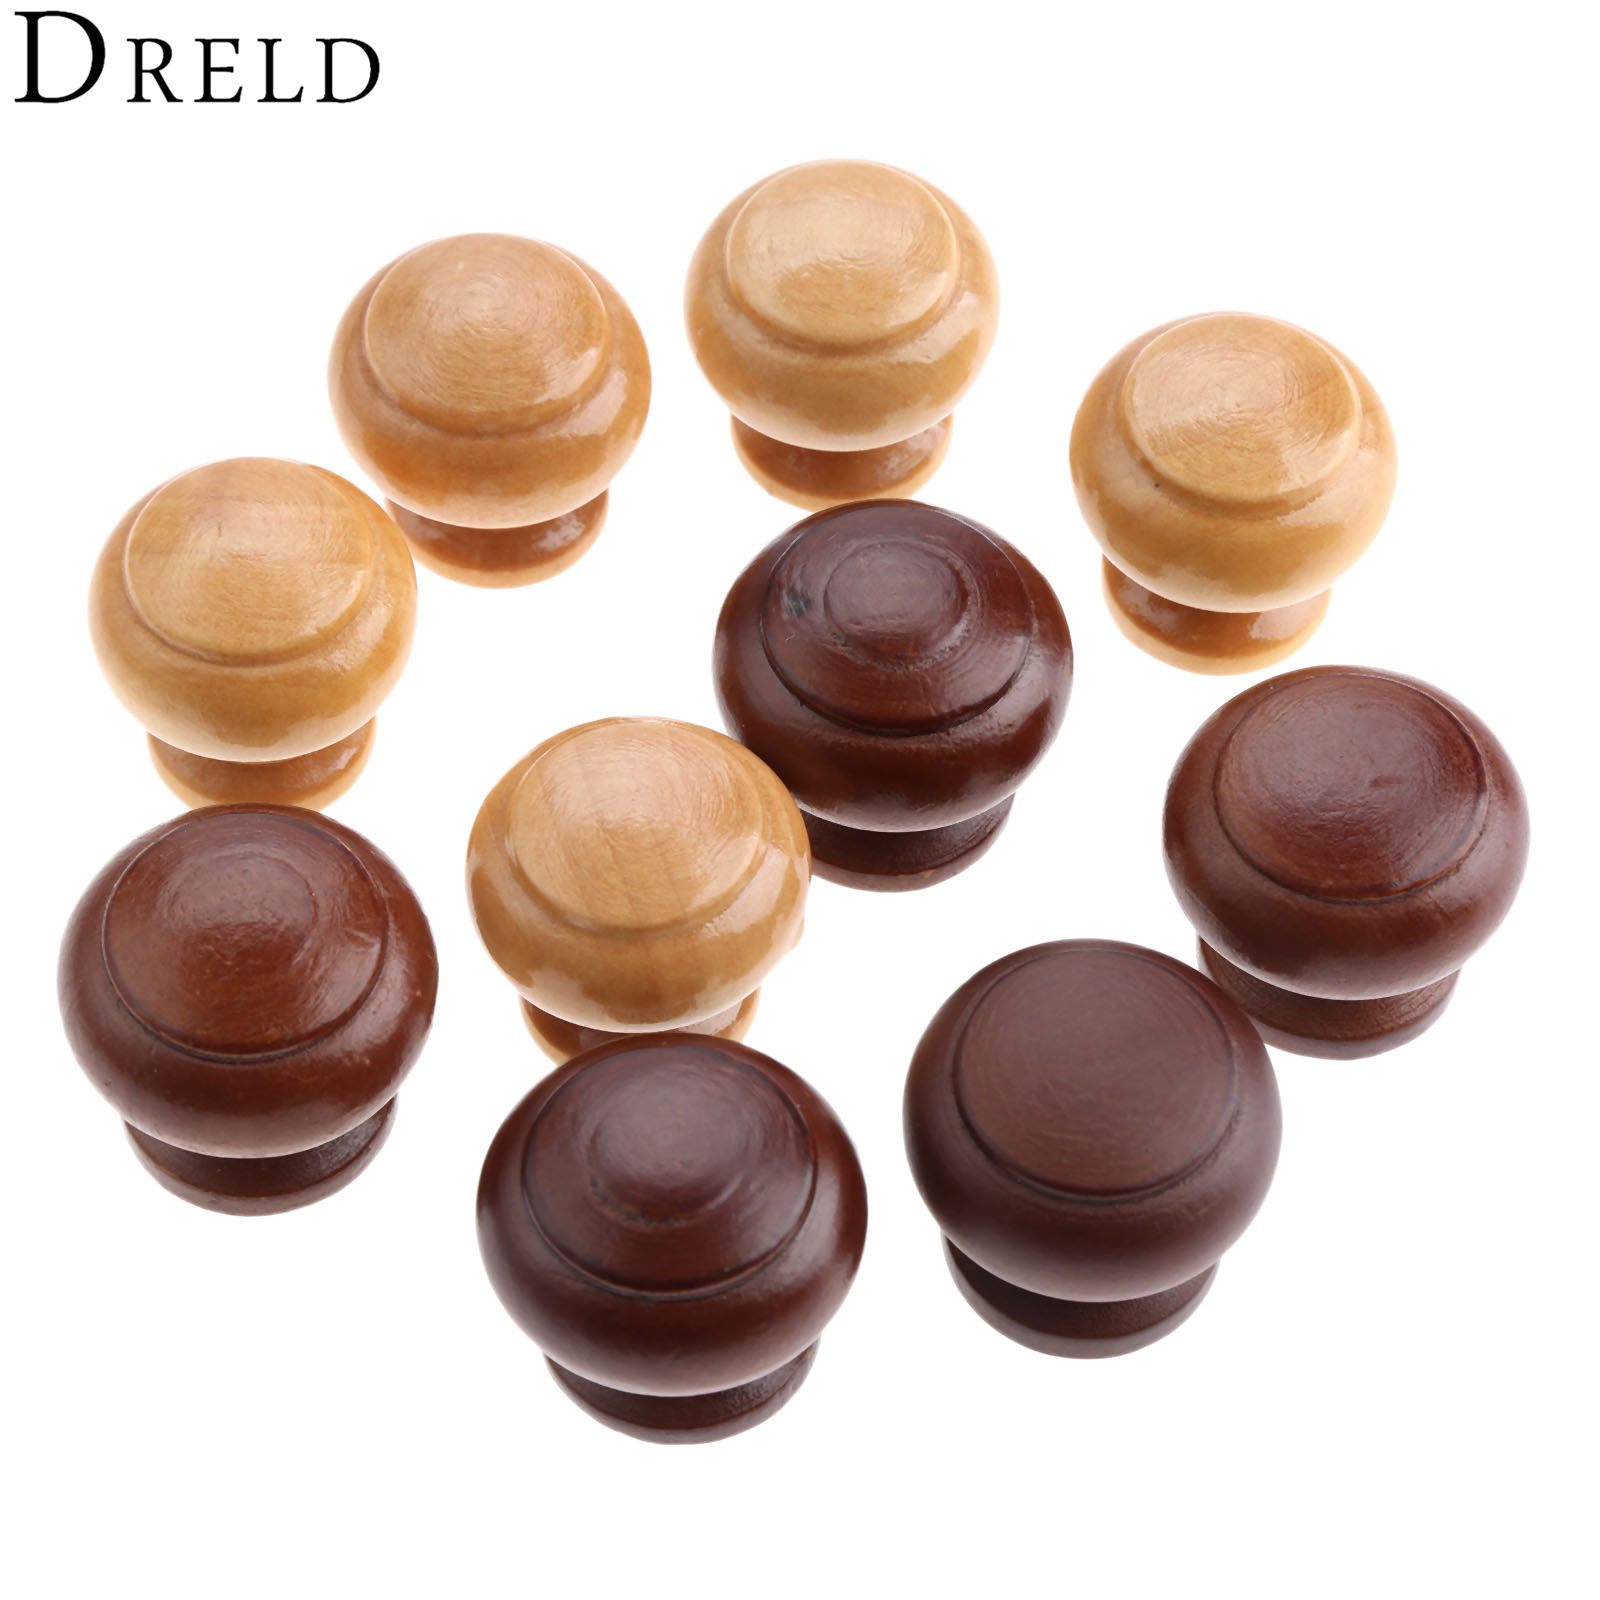 DRELD 5Pcs Wooden Kitchen Drawer Cabinet Knobs and Handles Closet Cupboard Furniture Handles Door Wood Pulls Furniture Hardware chic sunflower pewter kitchen cabinet knobs drawer dresser pulls handles cupboard closet door knob modern furniture hardware